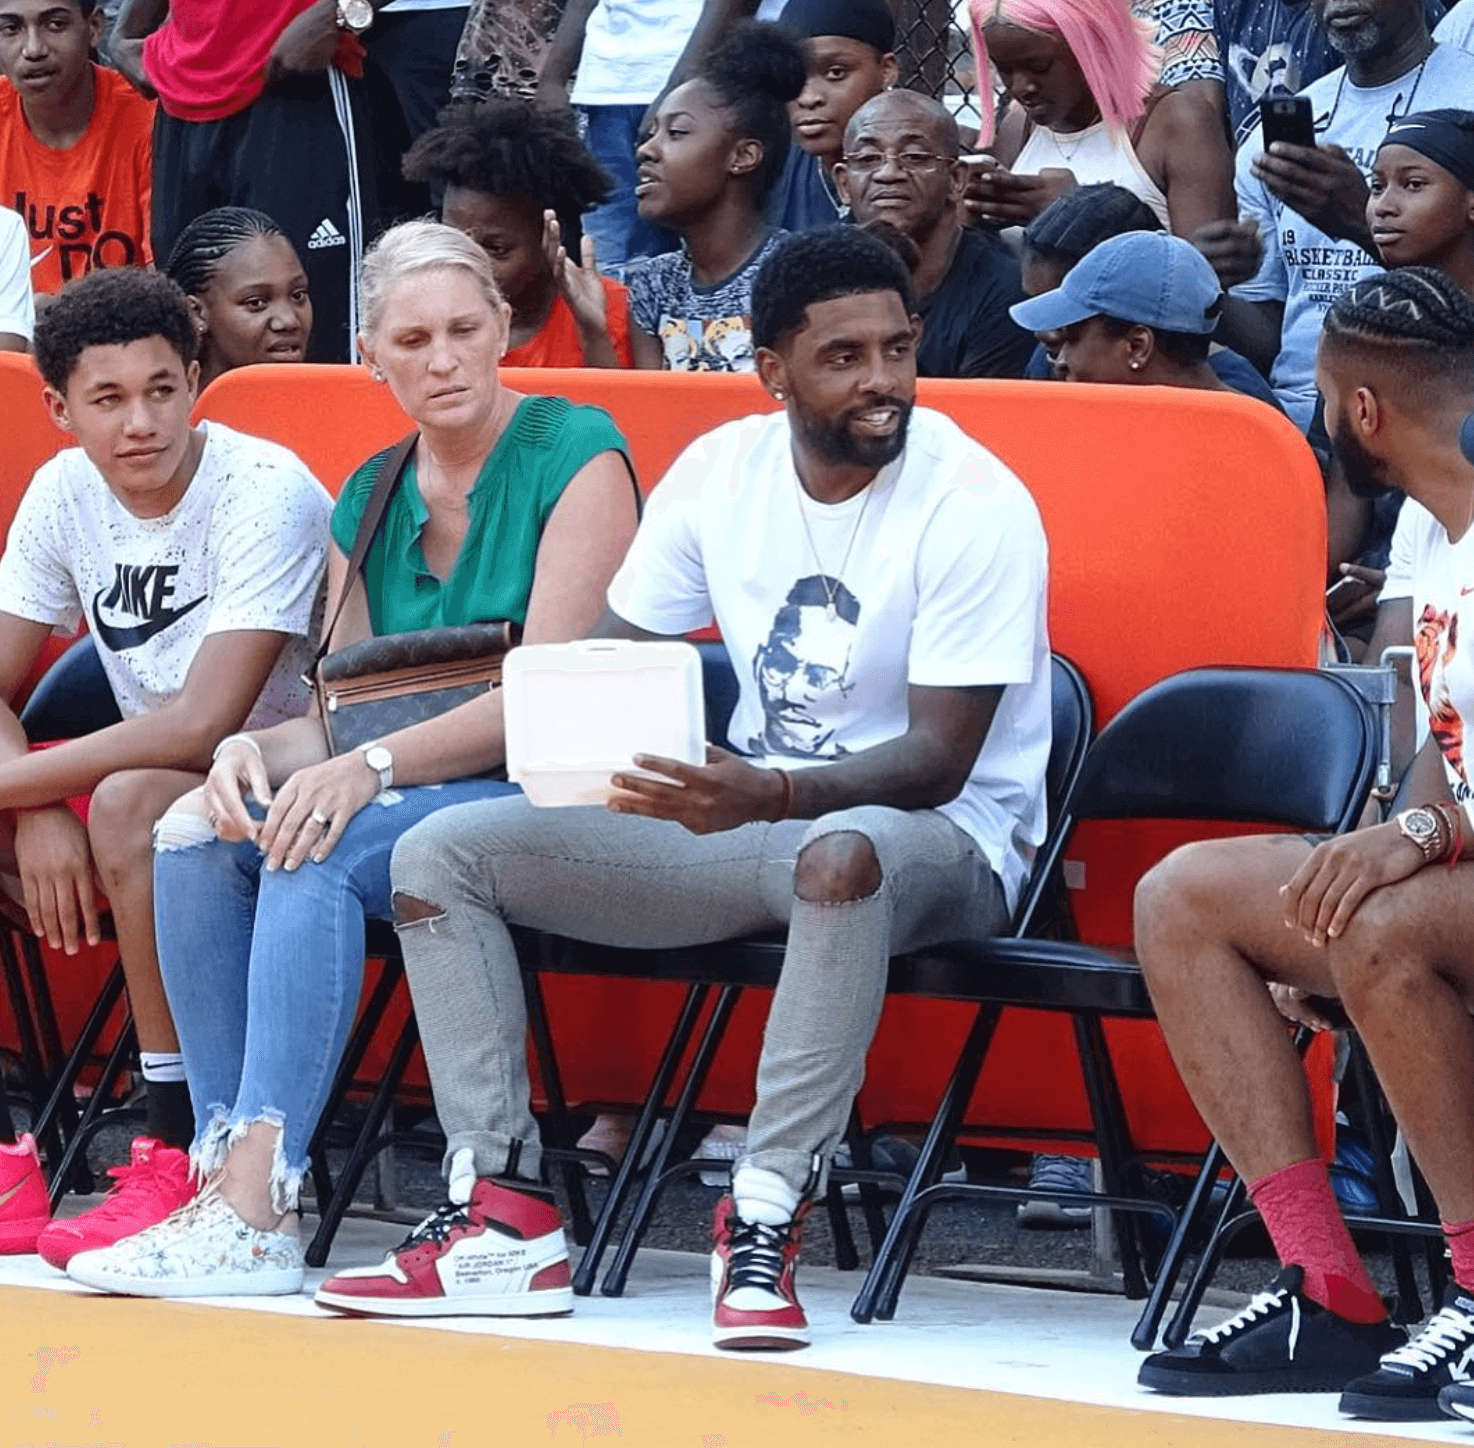 Kyrie Irving in the Off White x Air Jordan 1